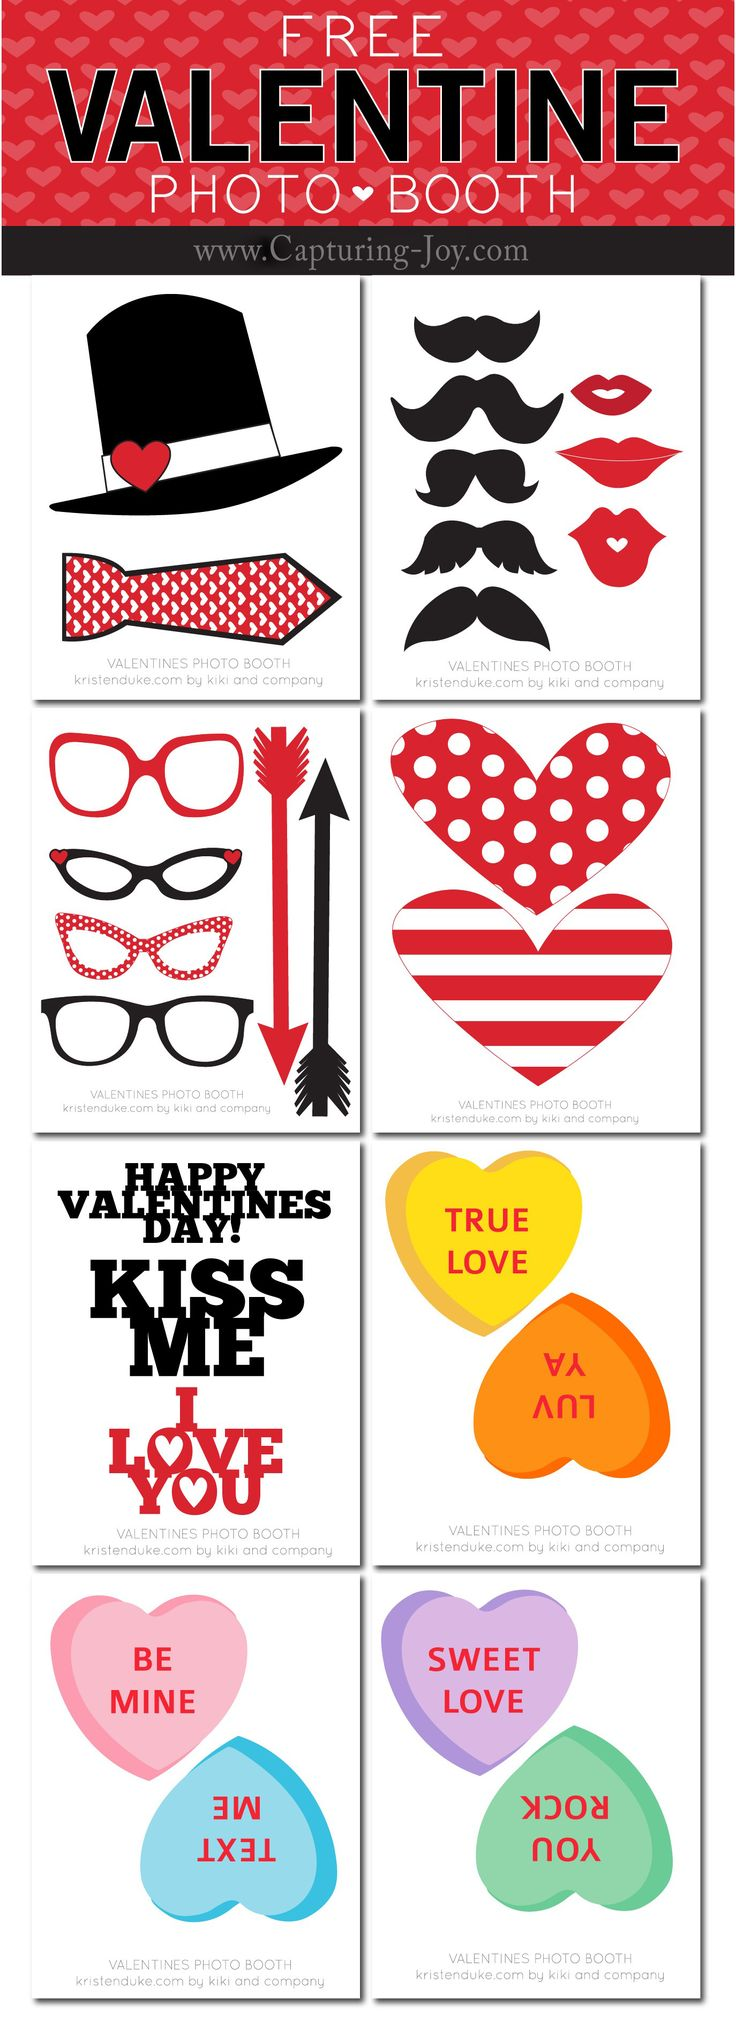 Valentine party ideas for church - Valentine S Photo Booth Props